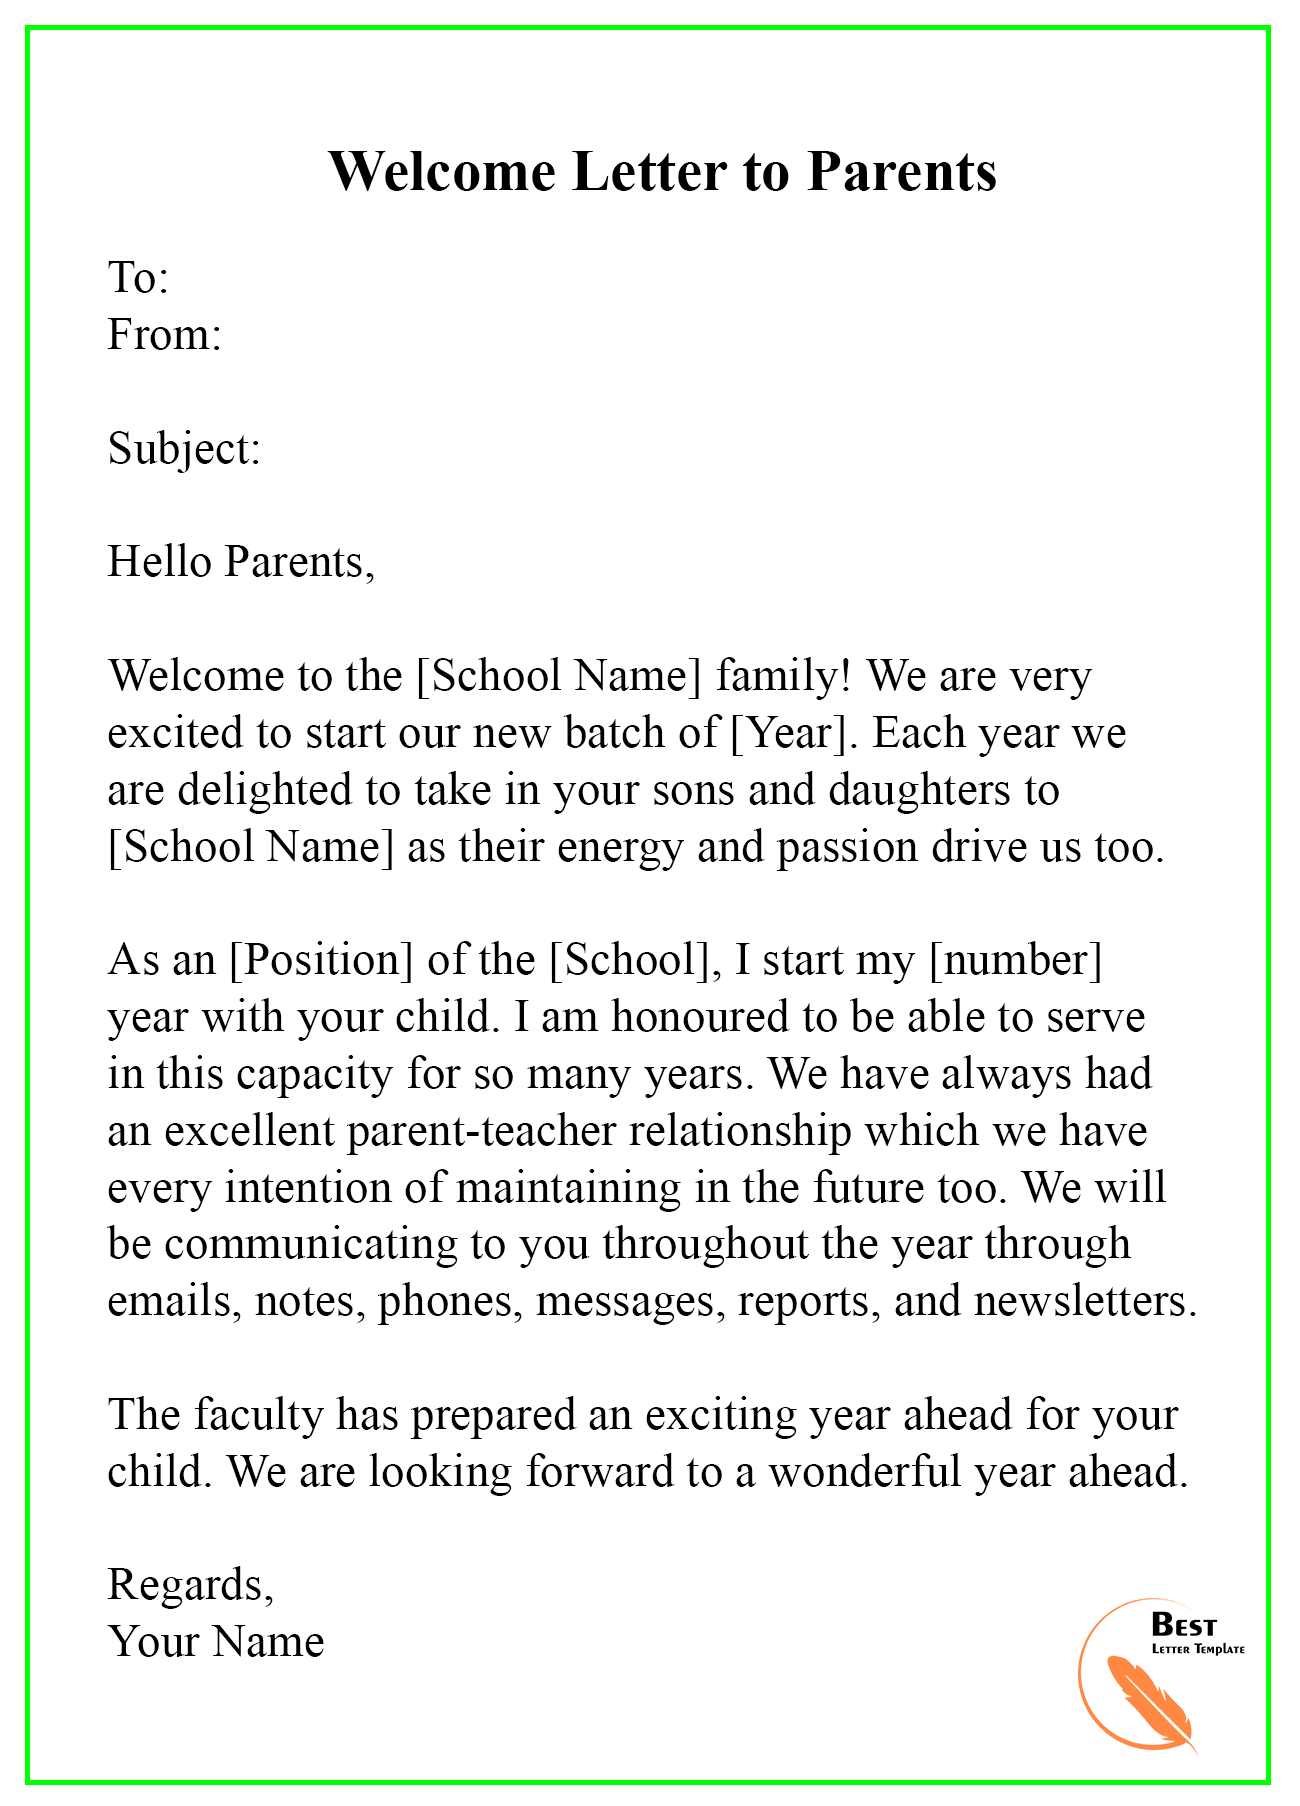 Welcome Letter Template – Format, Sample & Example | Best